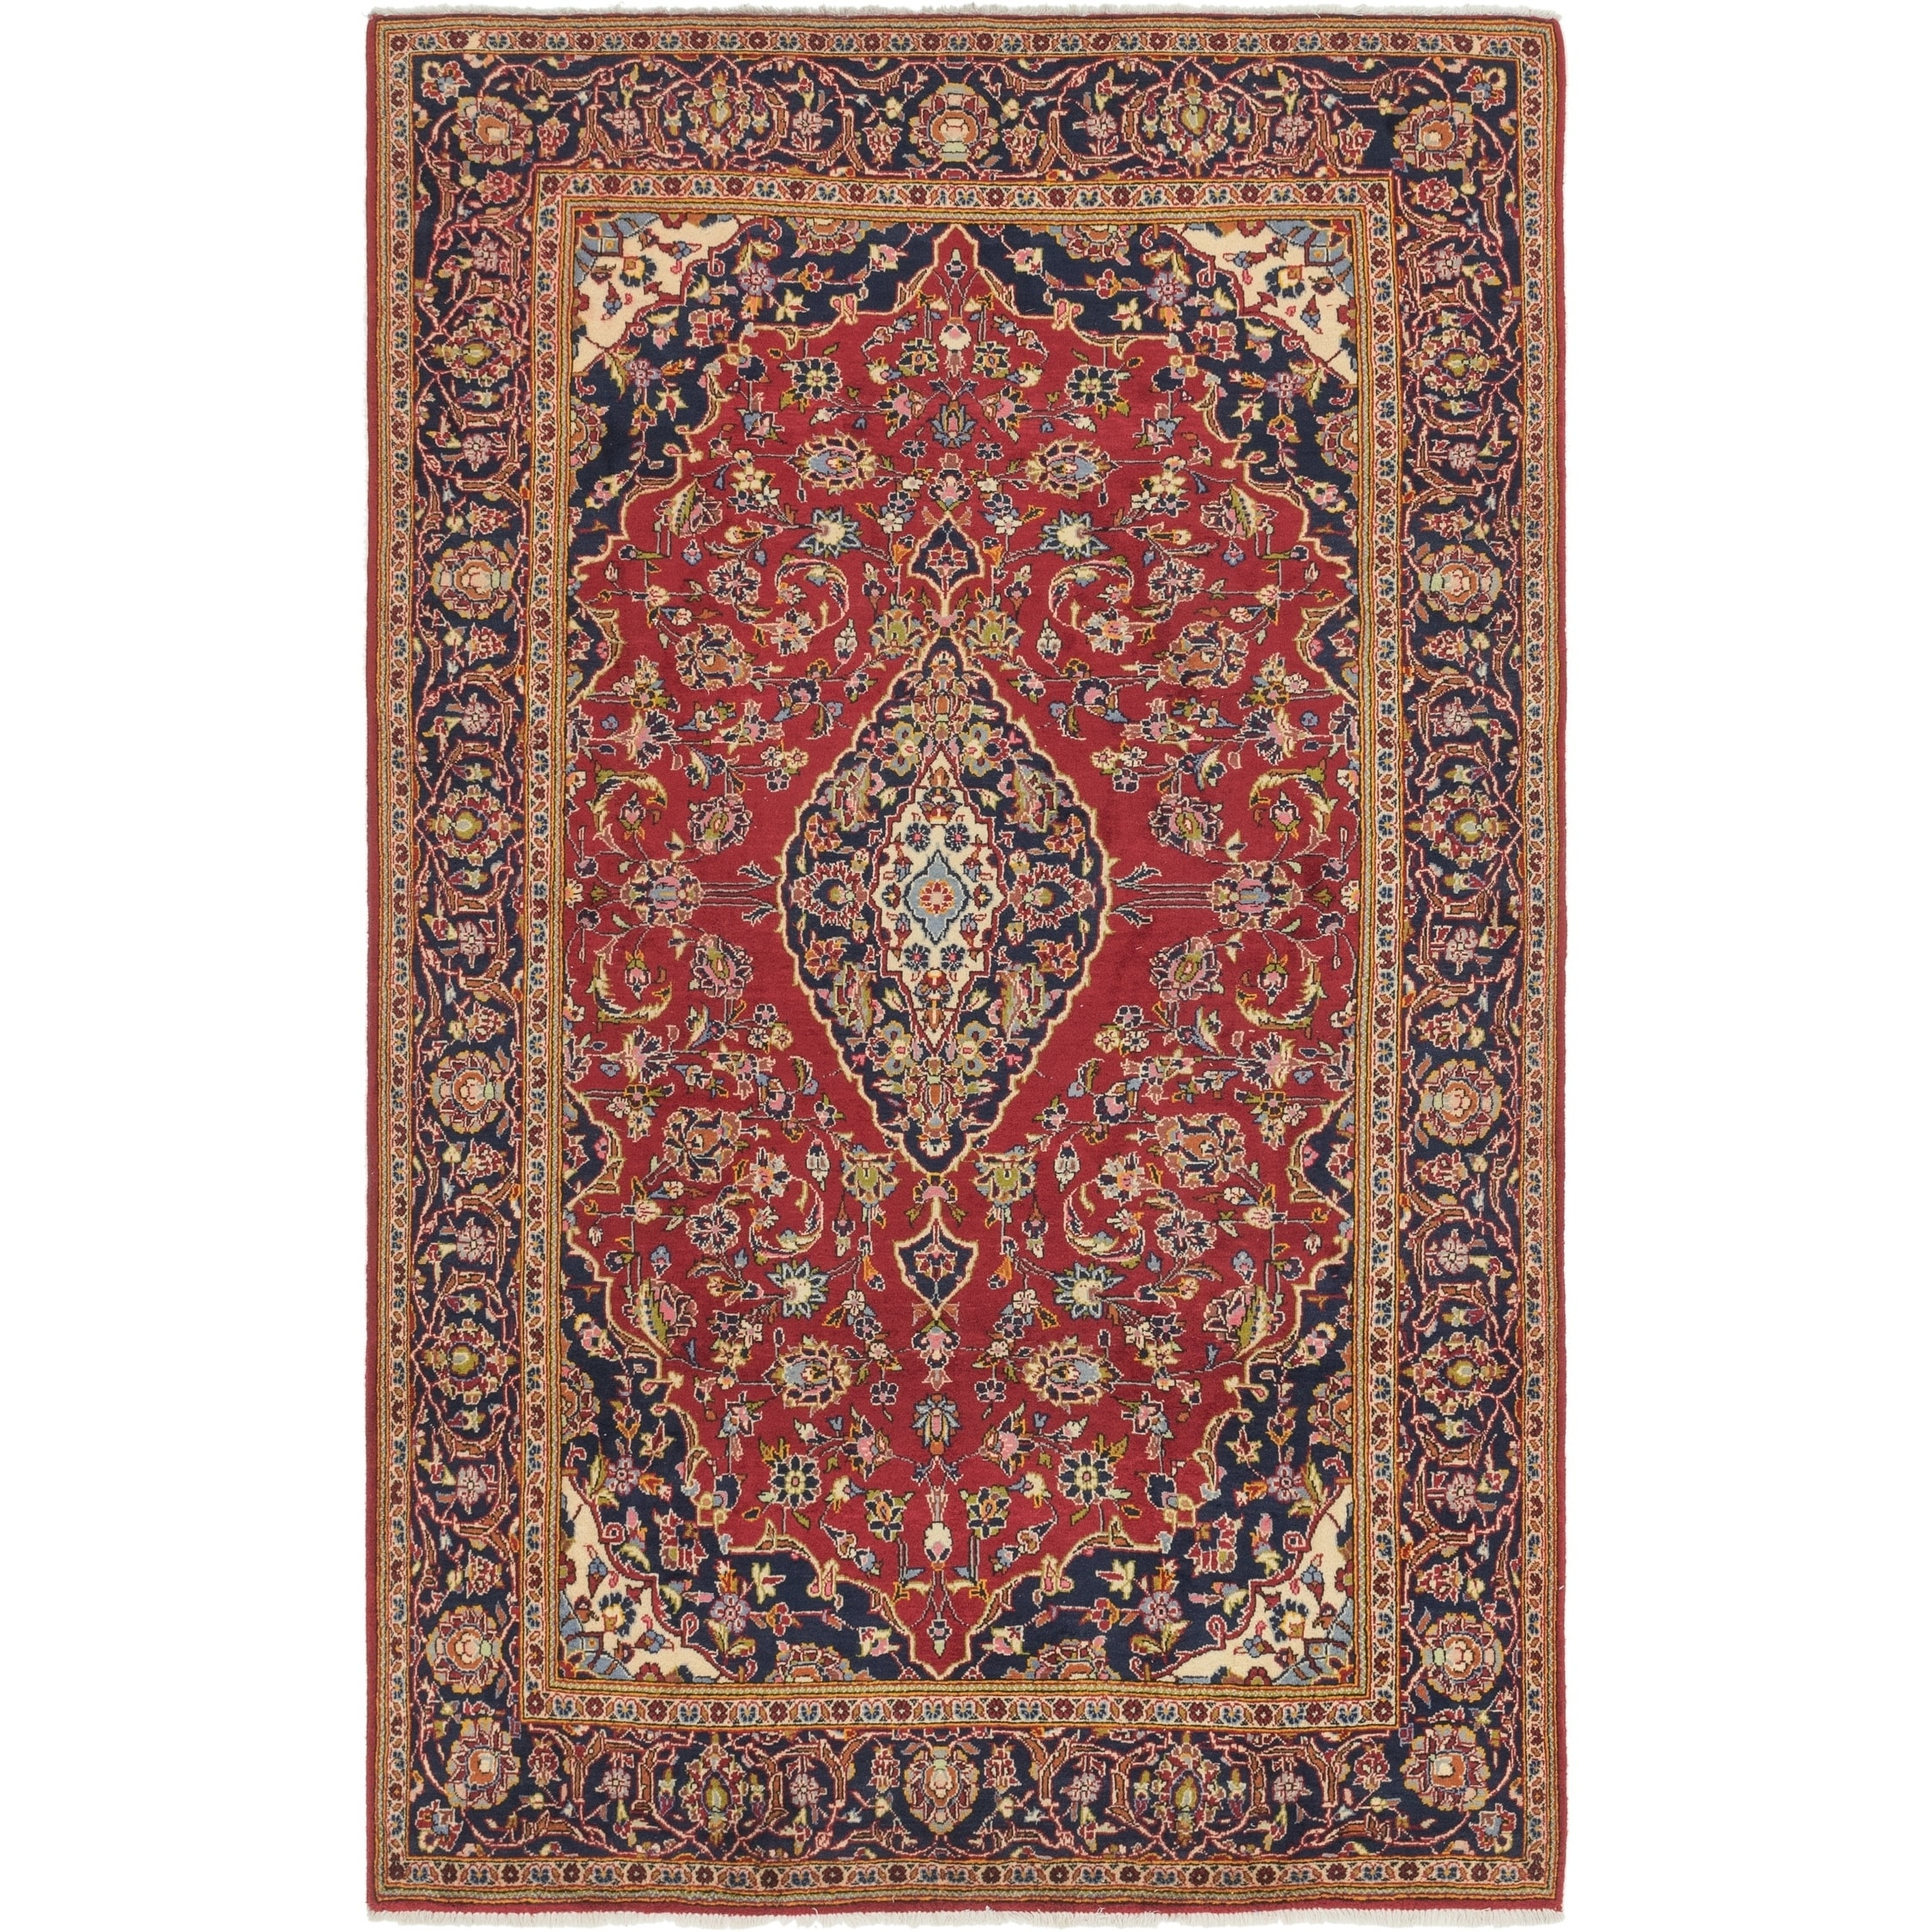 Hand Knotted Kashan Wool Area Rug - 6 5 x 10 6 (Red - 6 5 x 10 6)